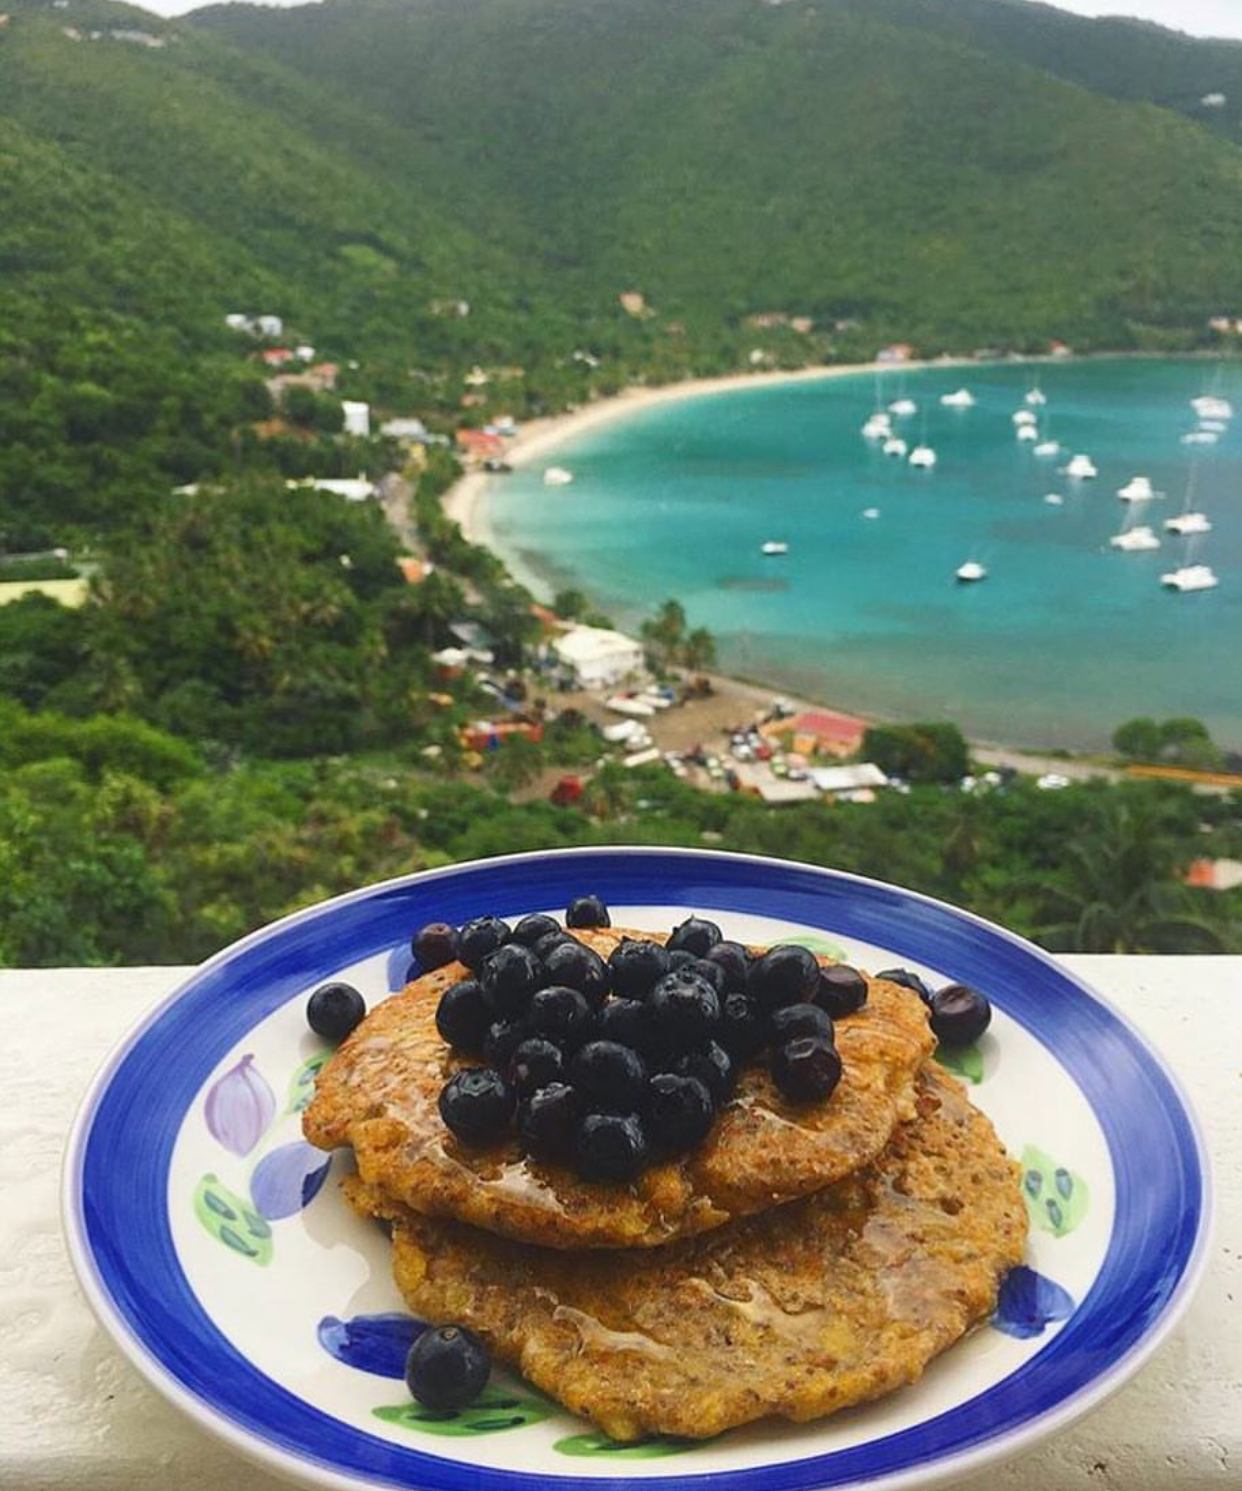 Some delicious plantain pancakes (similar to banana) I made whilst visiting my dad in the Caribbean.